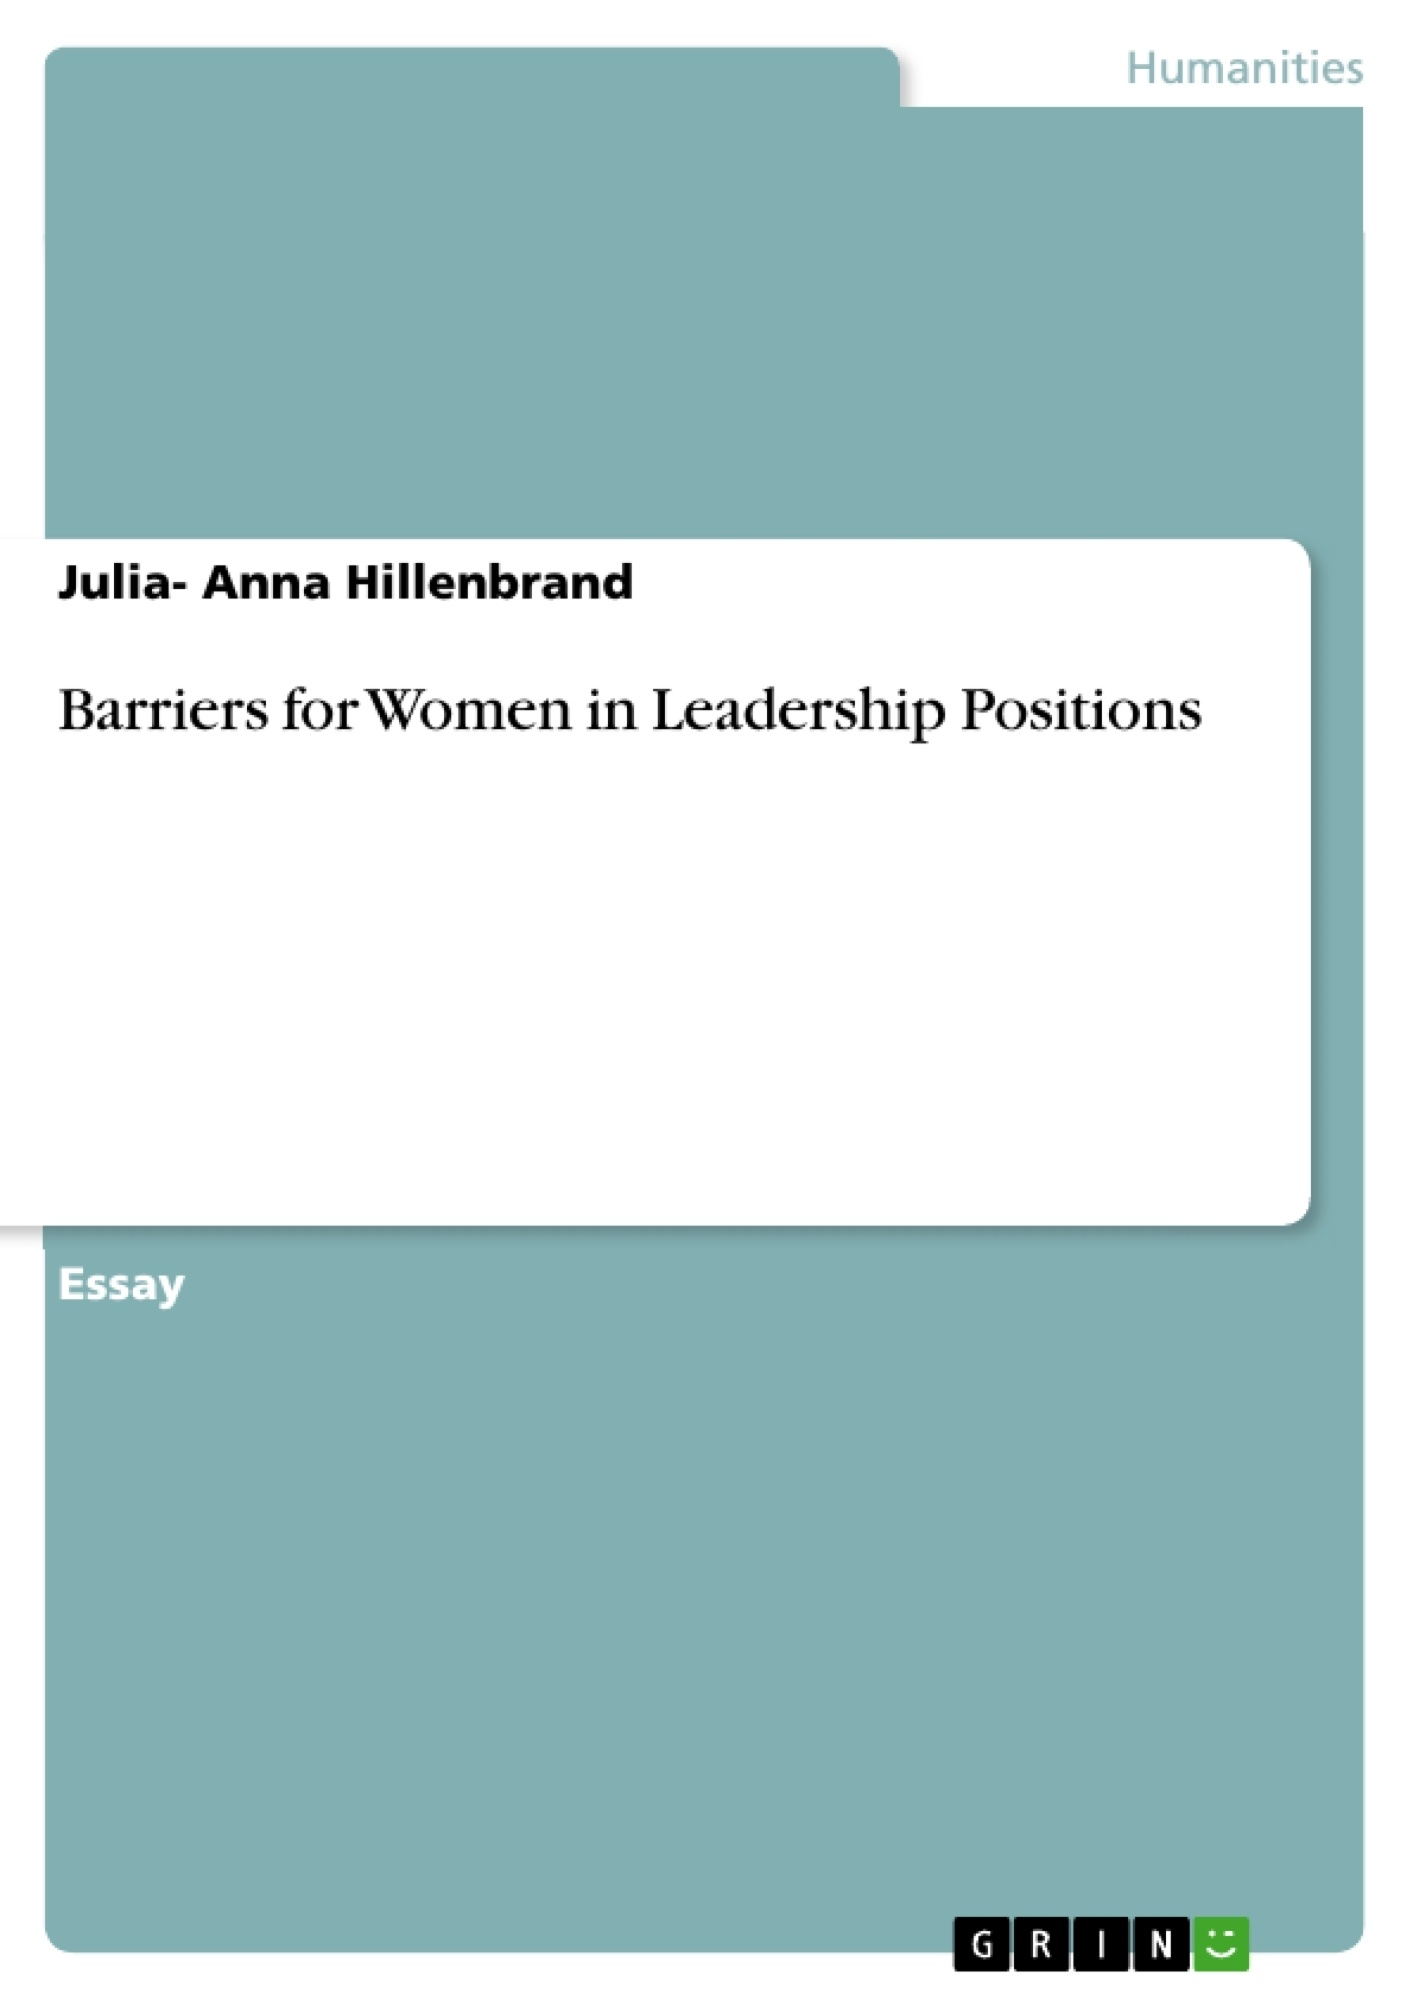 Title: Barriers for Women in Leadership Positions